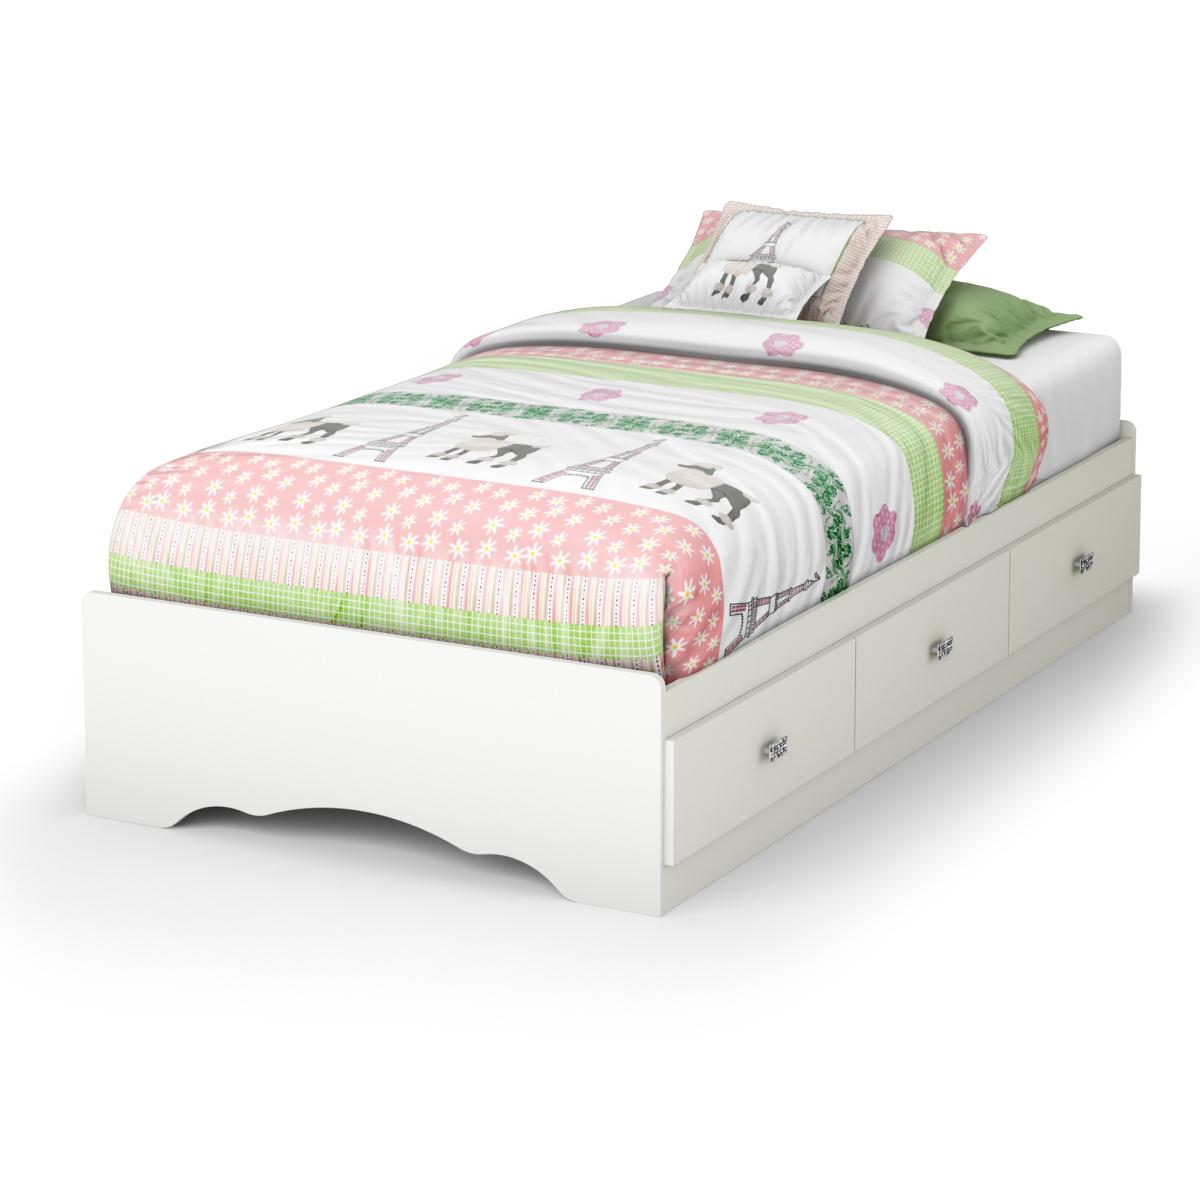 South Shore Tiara Twin Mates Bed - Pure White